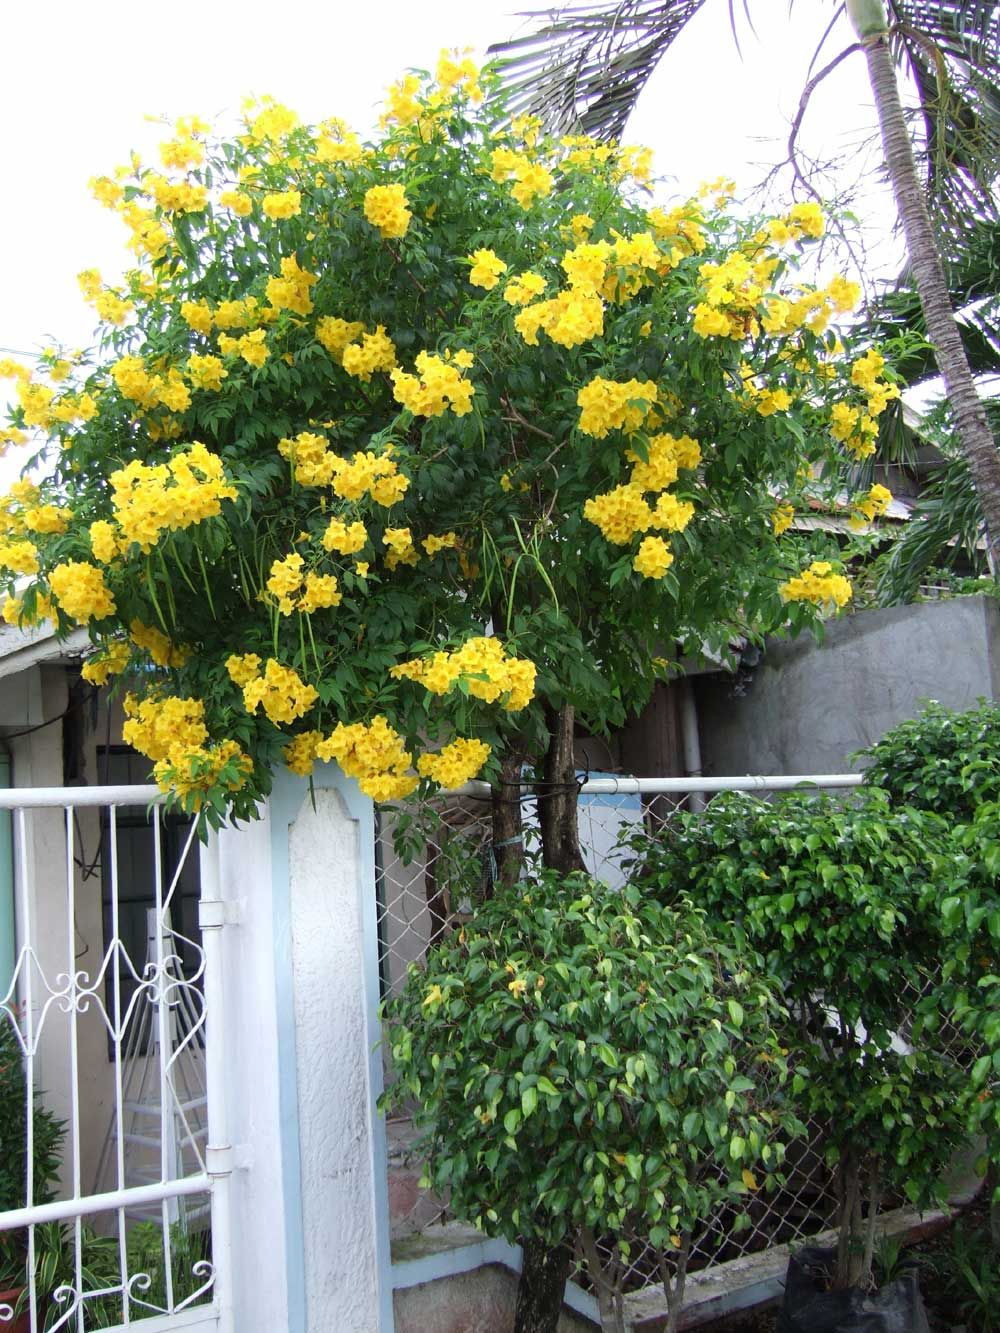 Yellow bells yellow trumpet tree tecoma stans rizal avenue yellow bells yellow trumpet tree tecoma stans rizal avenue arevalo iloilo city philippines mightylinksfo